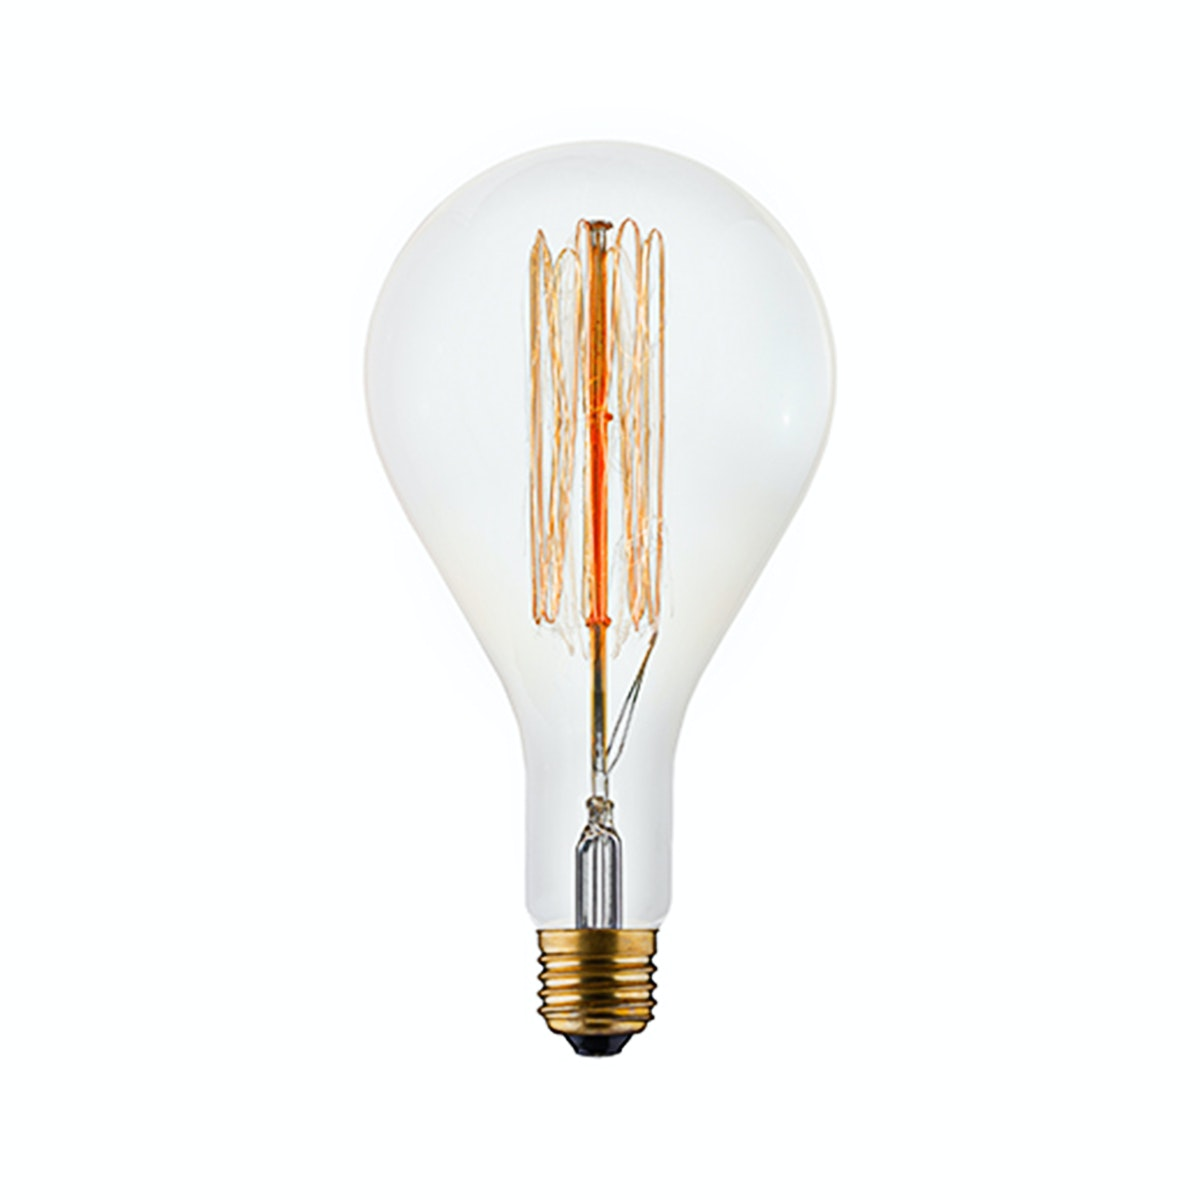 VIO The Bulb Bohlam Edison VE-51